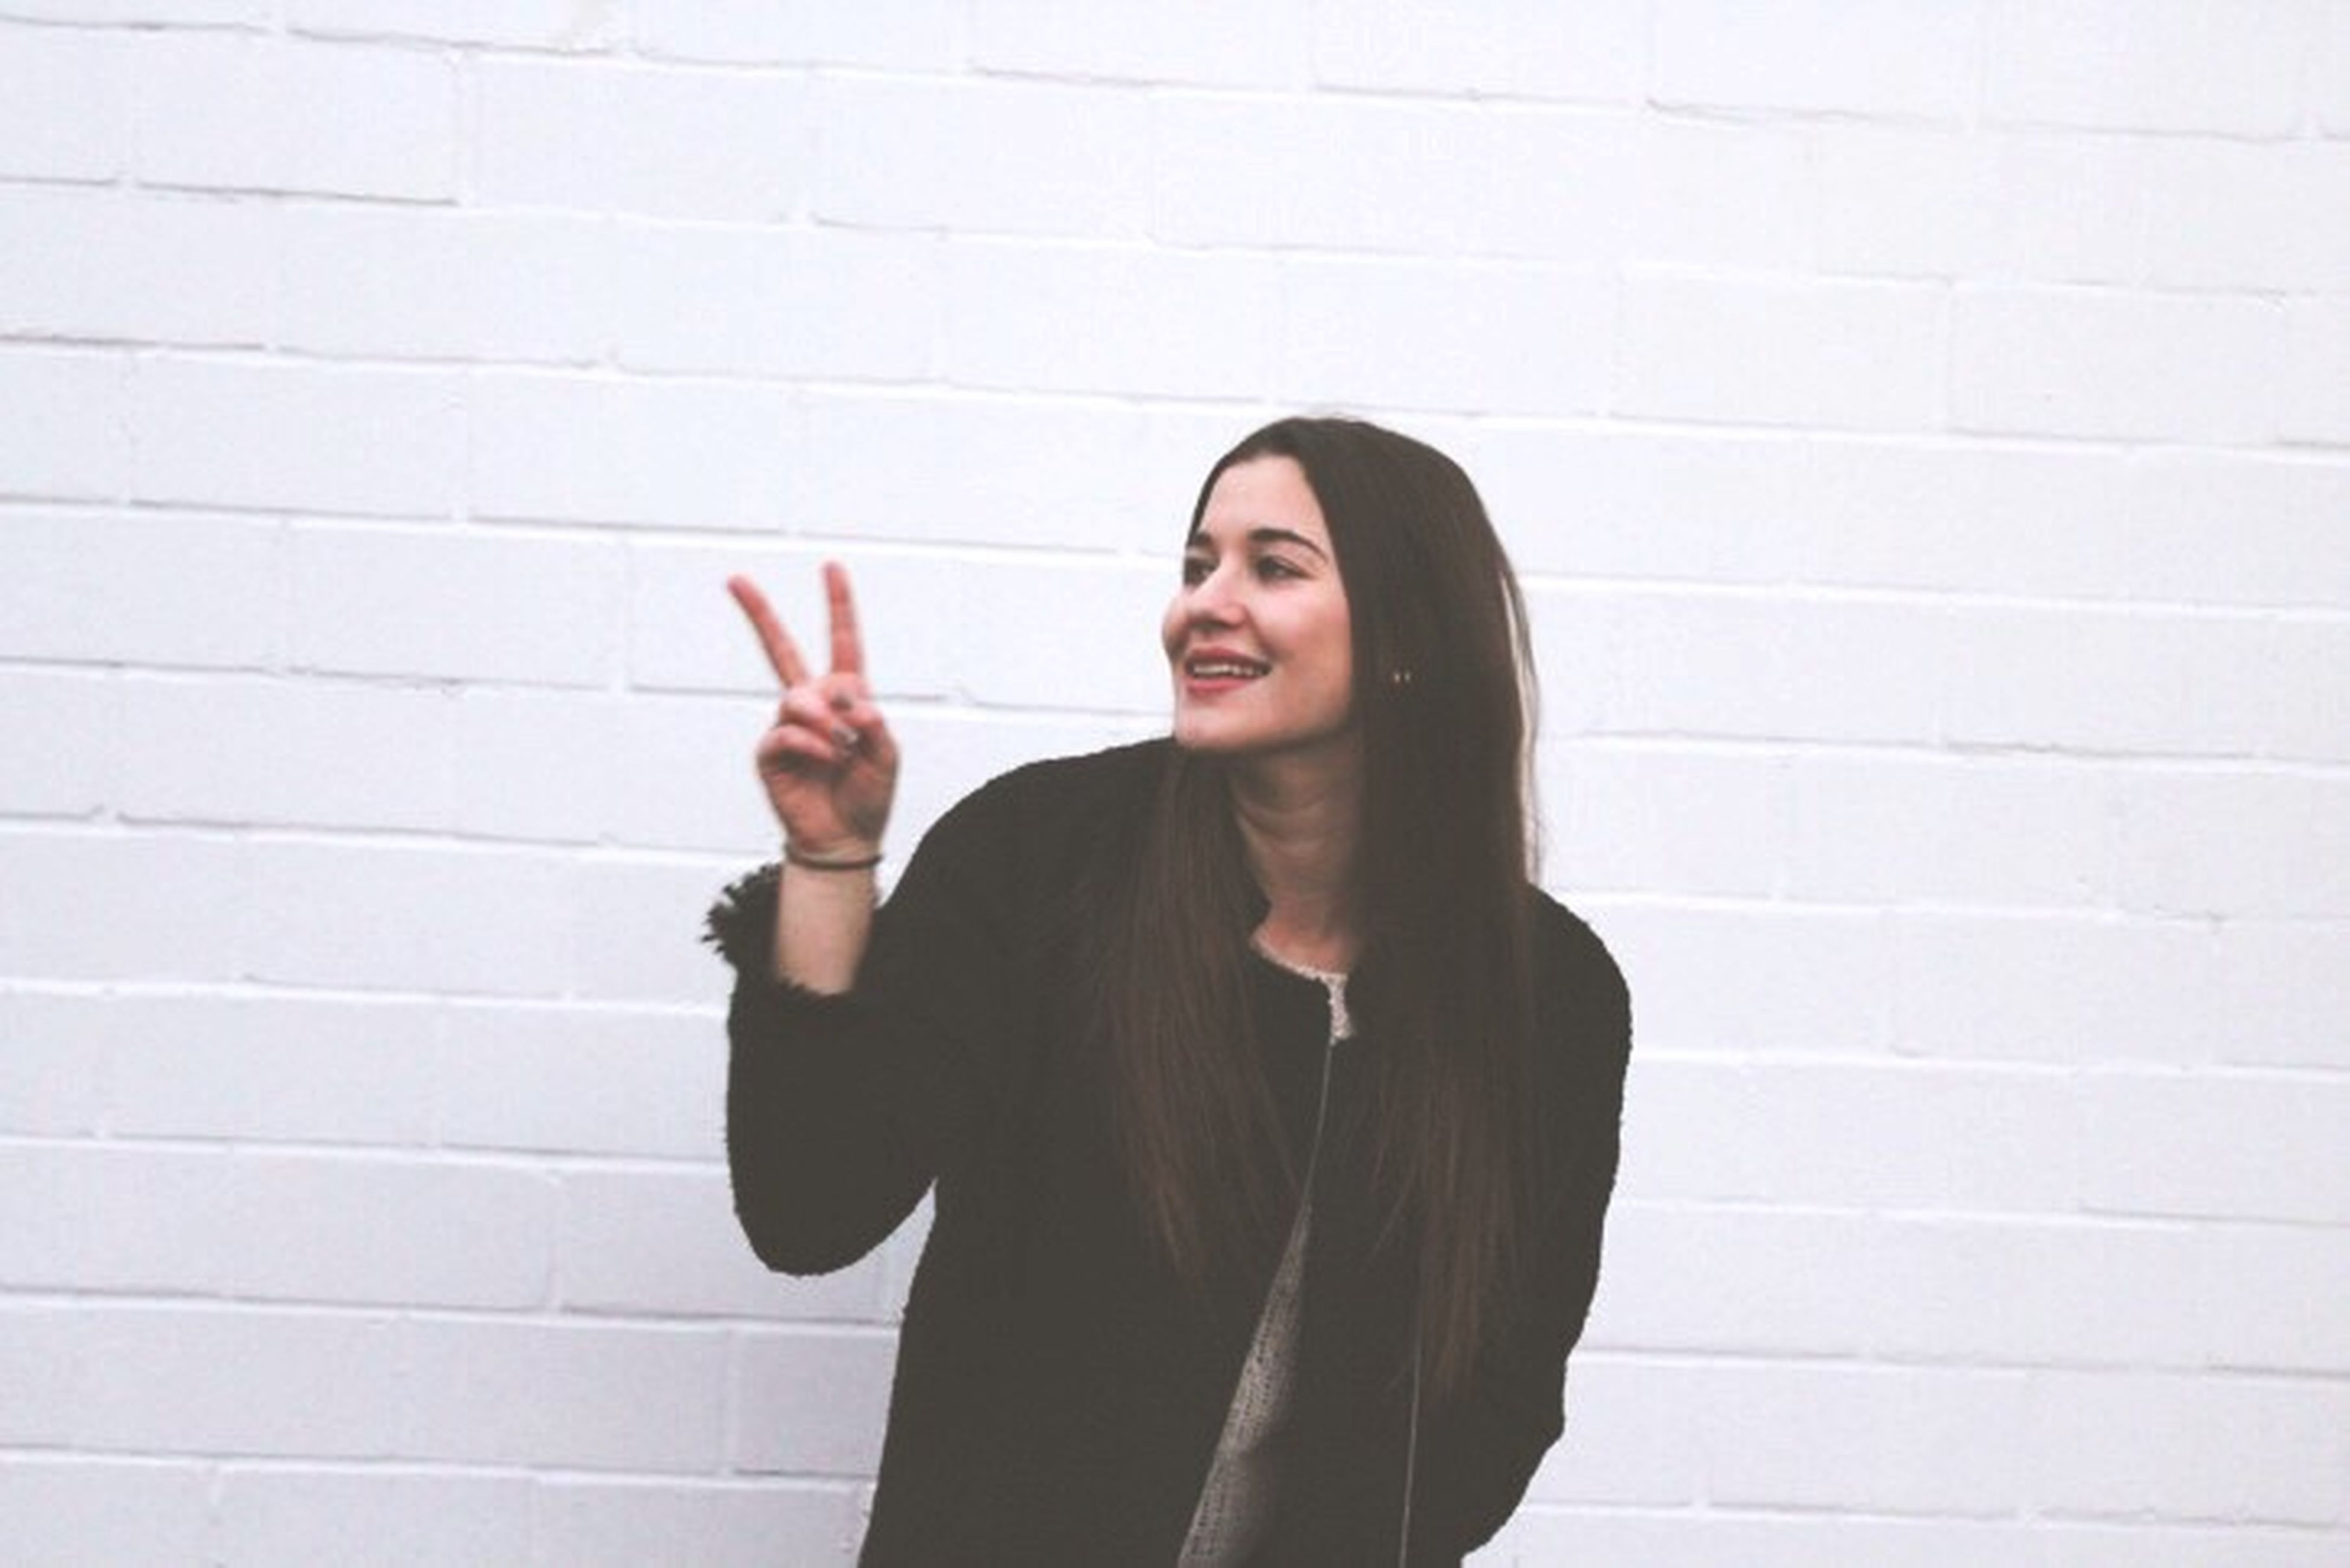 gesturing, smiling, waist up, only women, one person, one woman only, adults only, long hair, communication, portrait, business, well-dressed, young adult, women, people, human body part, thumbs up, cheerful, happiness, adult, human hand, outdoors, day, one young woman only, young women